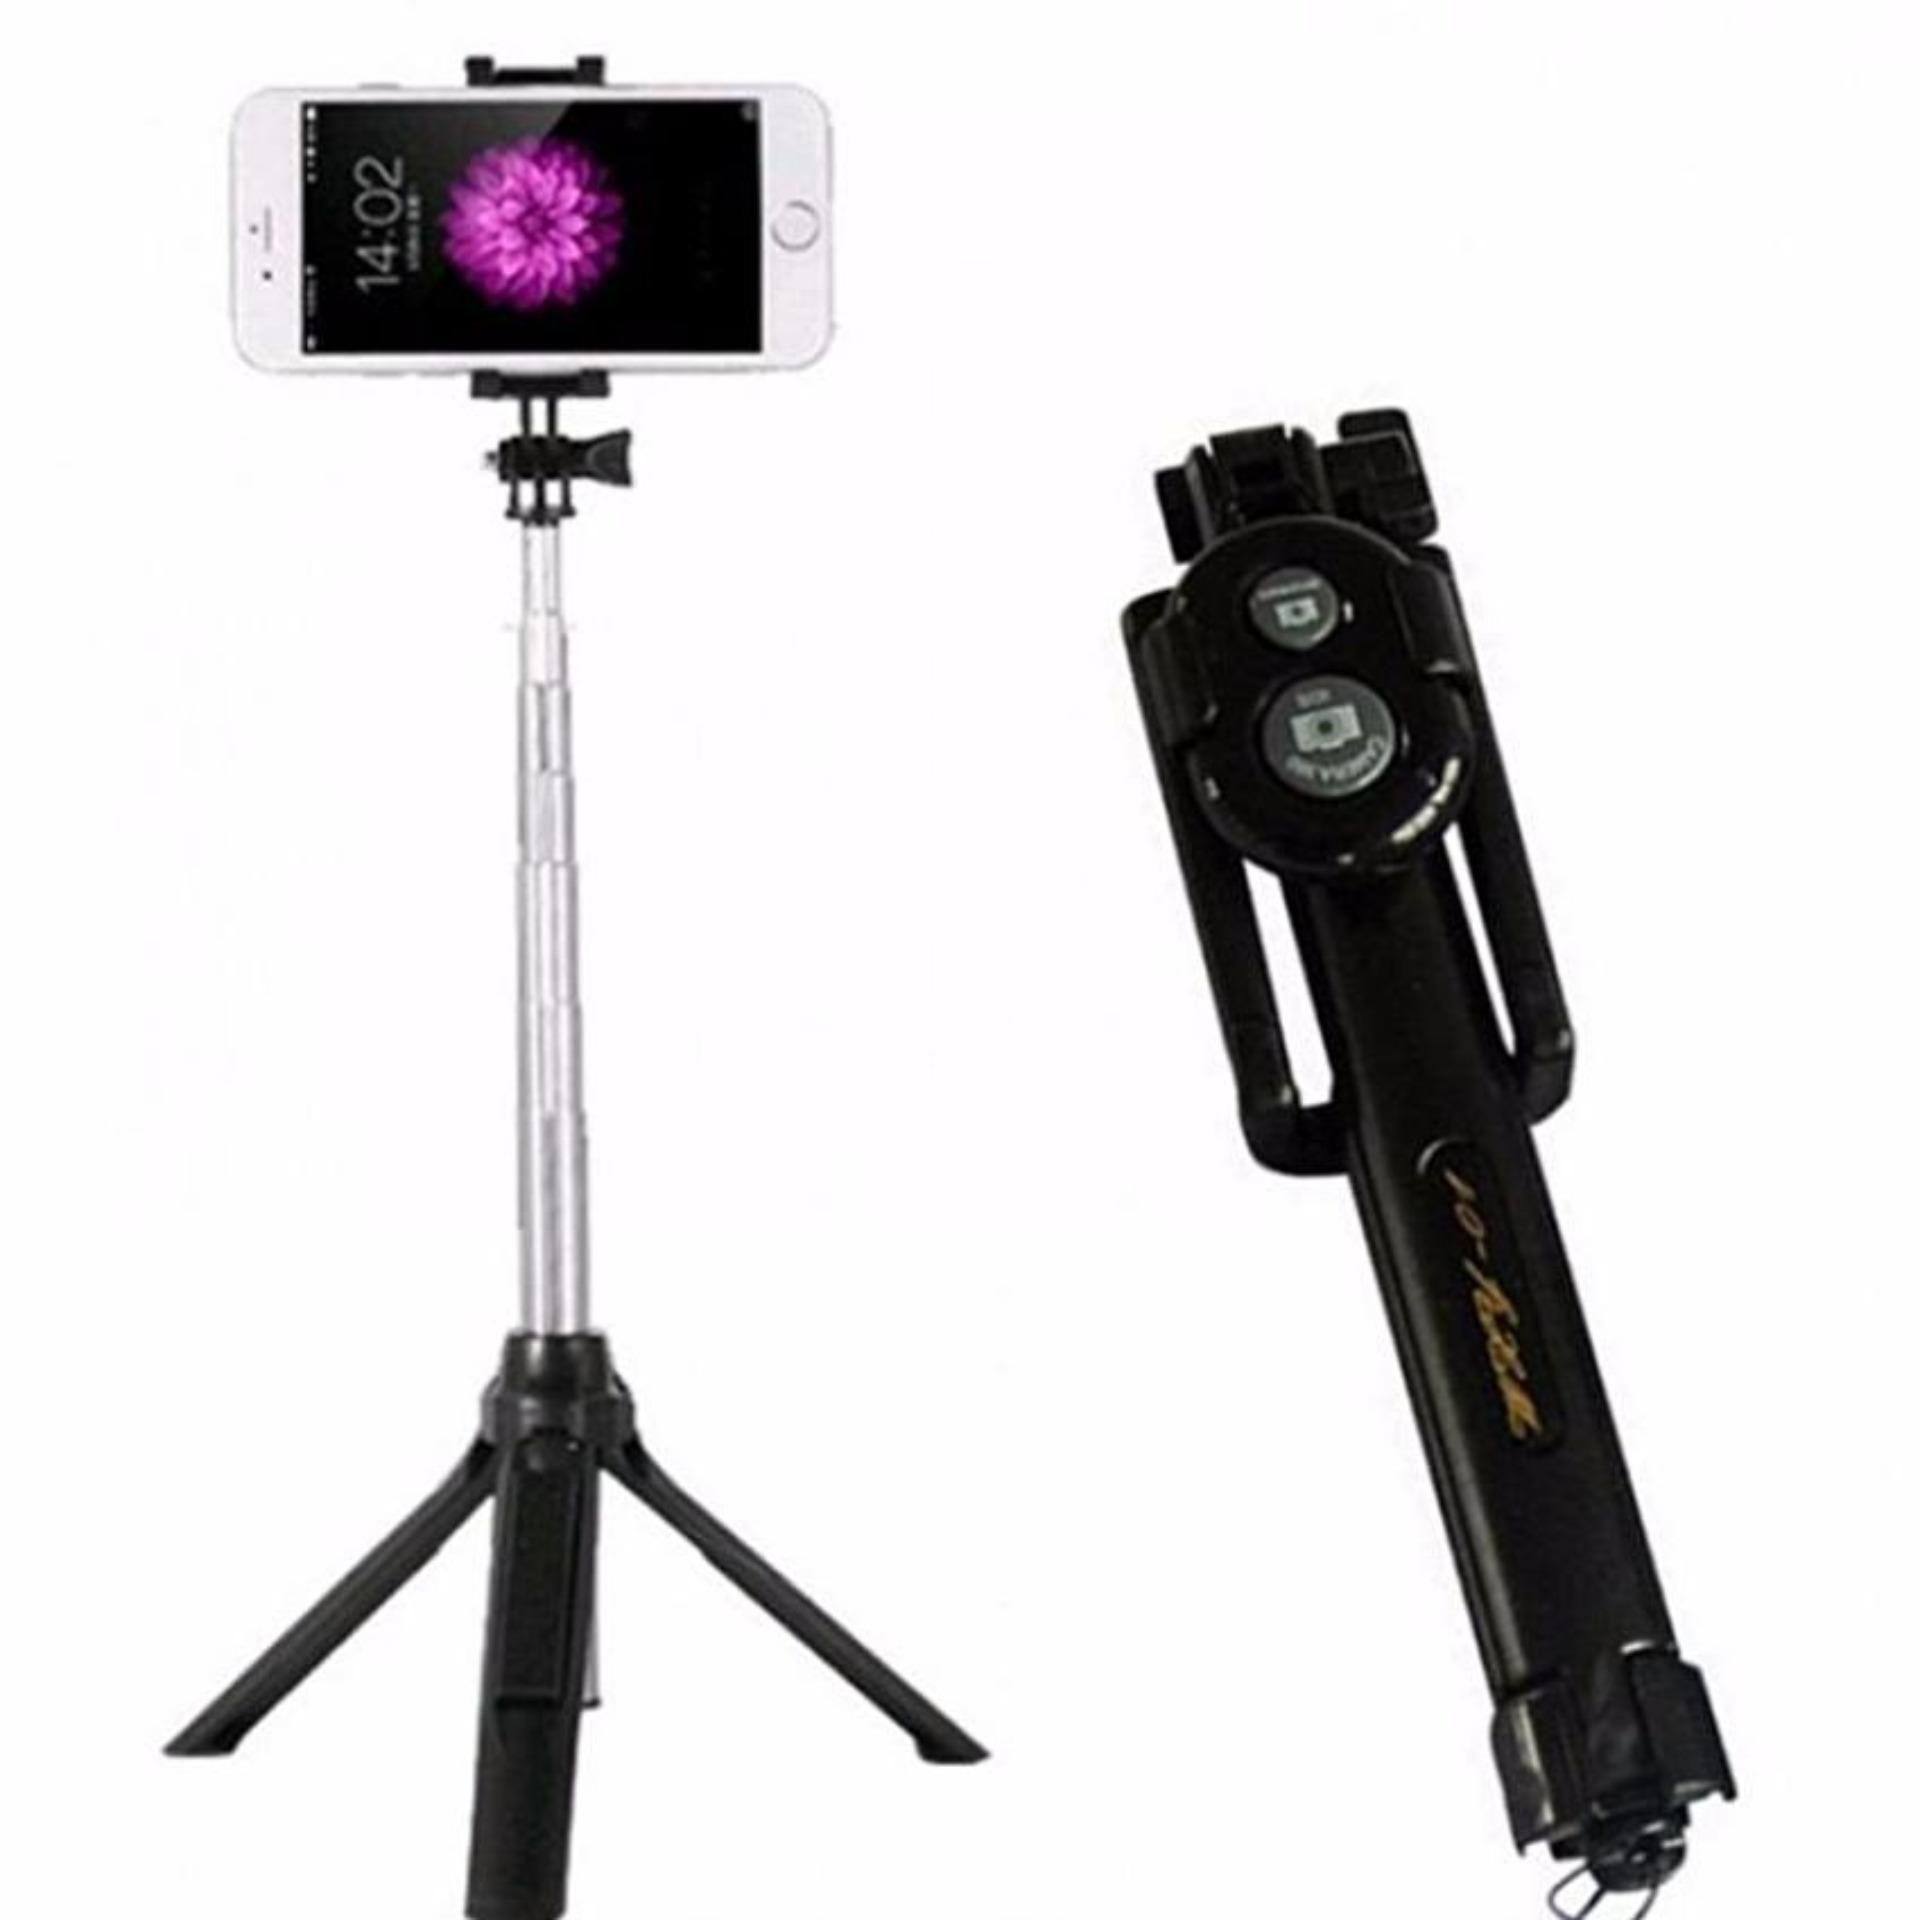 Tongsis 3 in 1 Bluetooth, Tripod, Selfie Stick -Hitam-